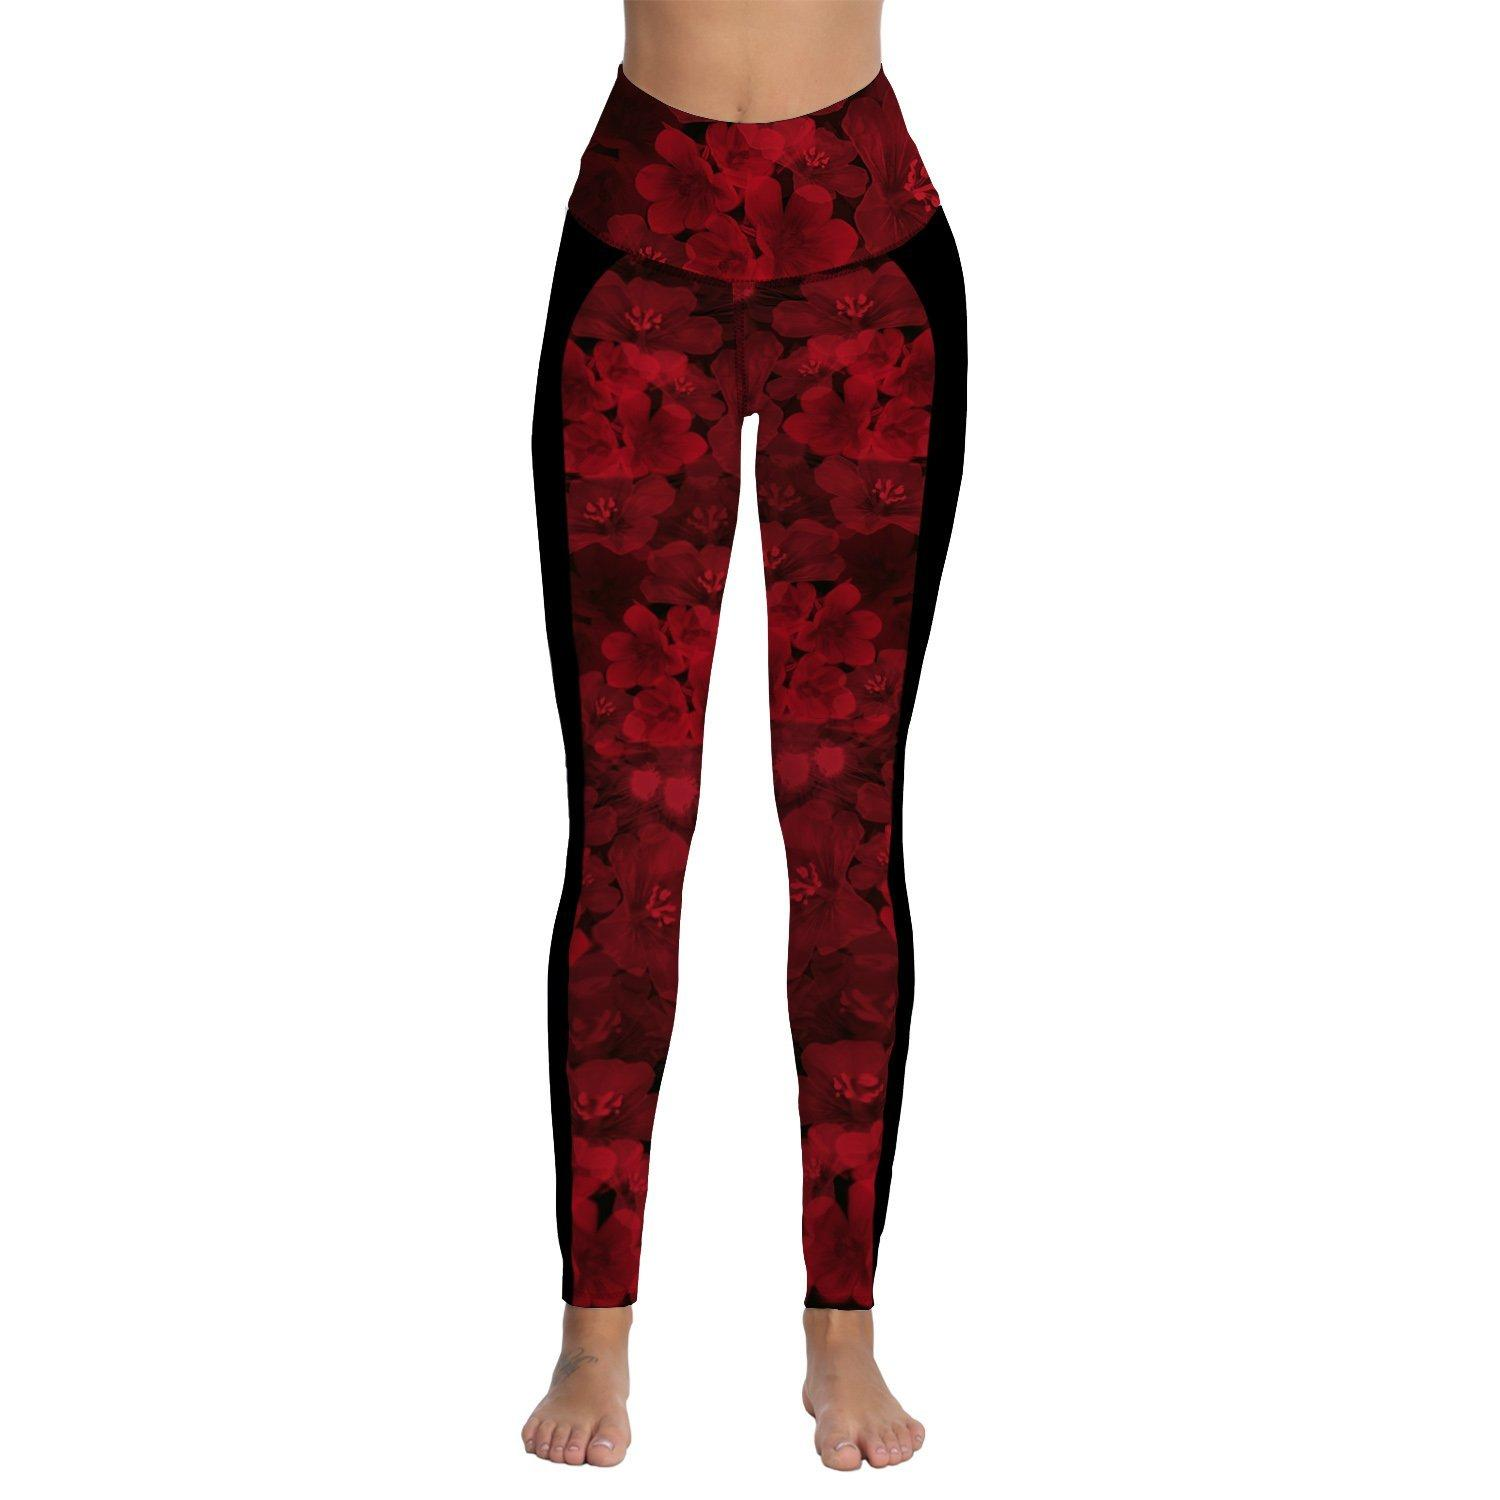 280777a0e1 2019 Womens Red Floral Printed High Waist Workout Leggings Athletic Gym  Fitness Tummy Control Yoga Pants From Johiny, $31.69 | DHgate.Com